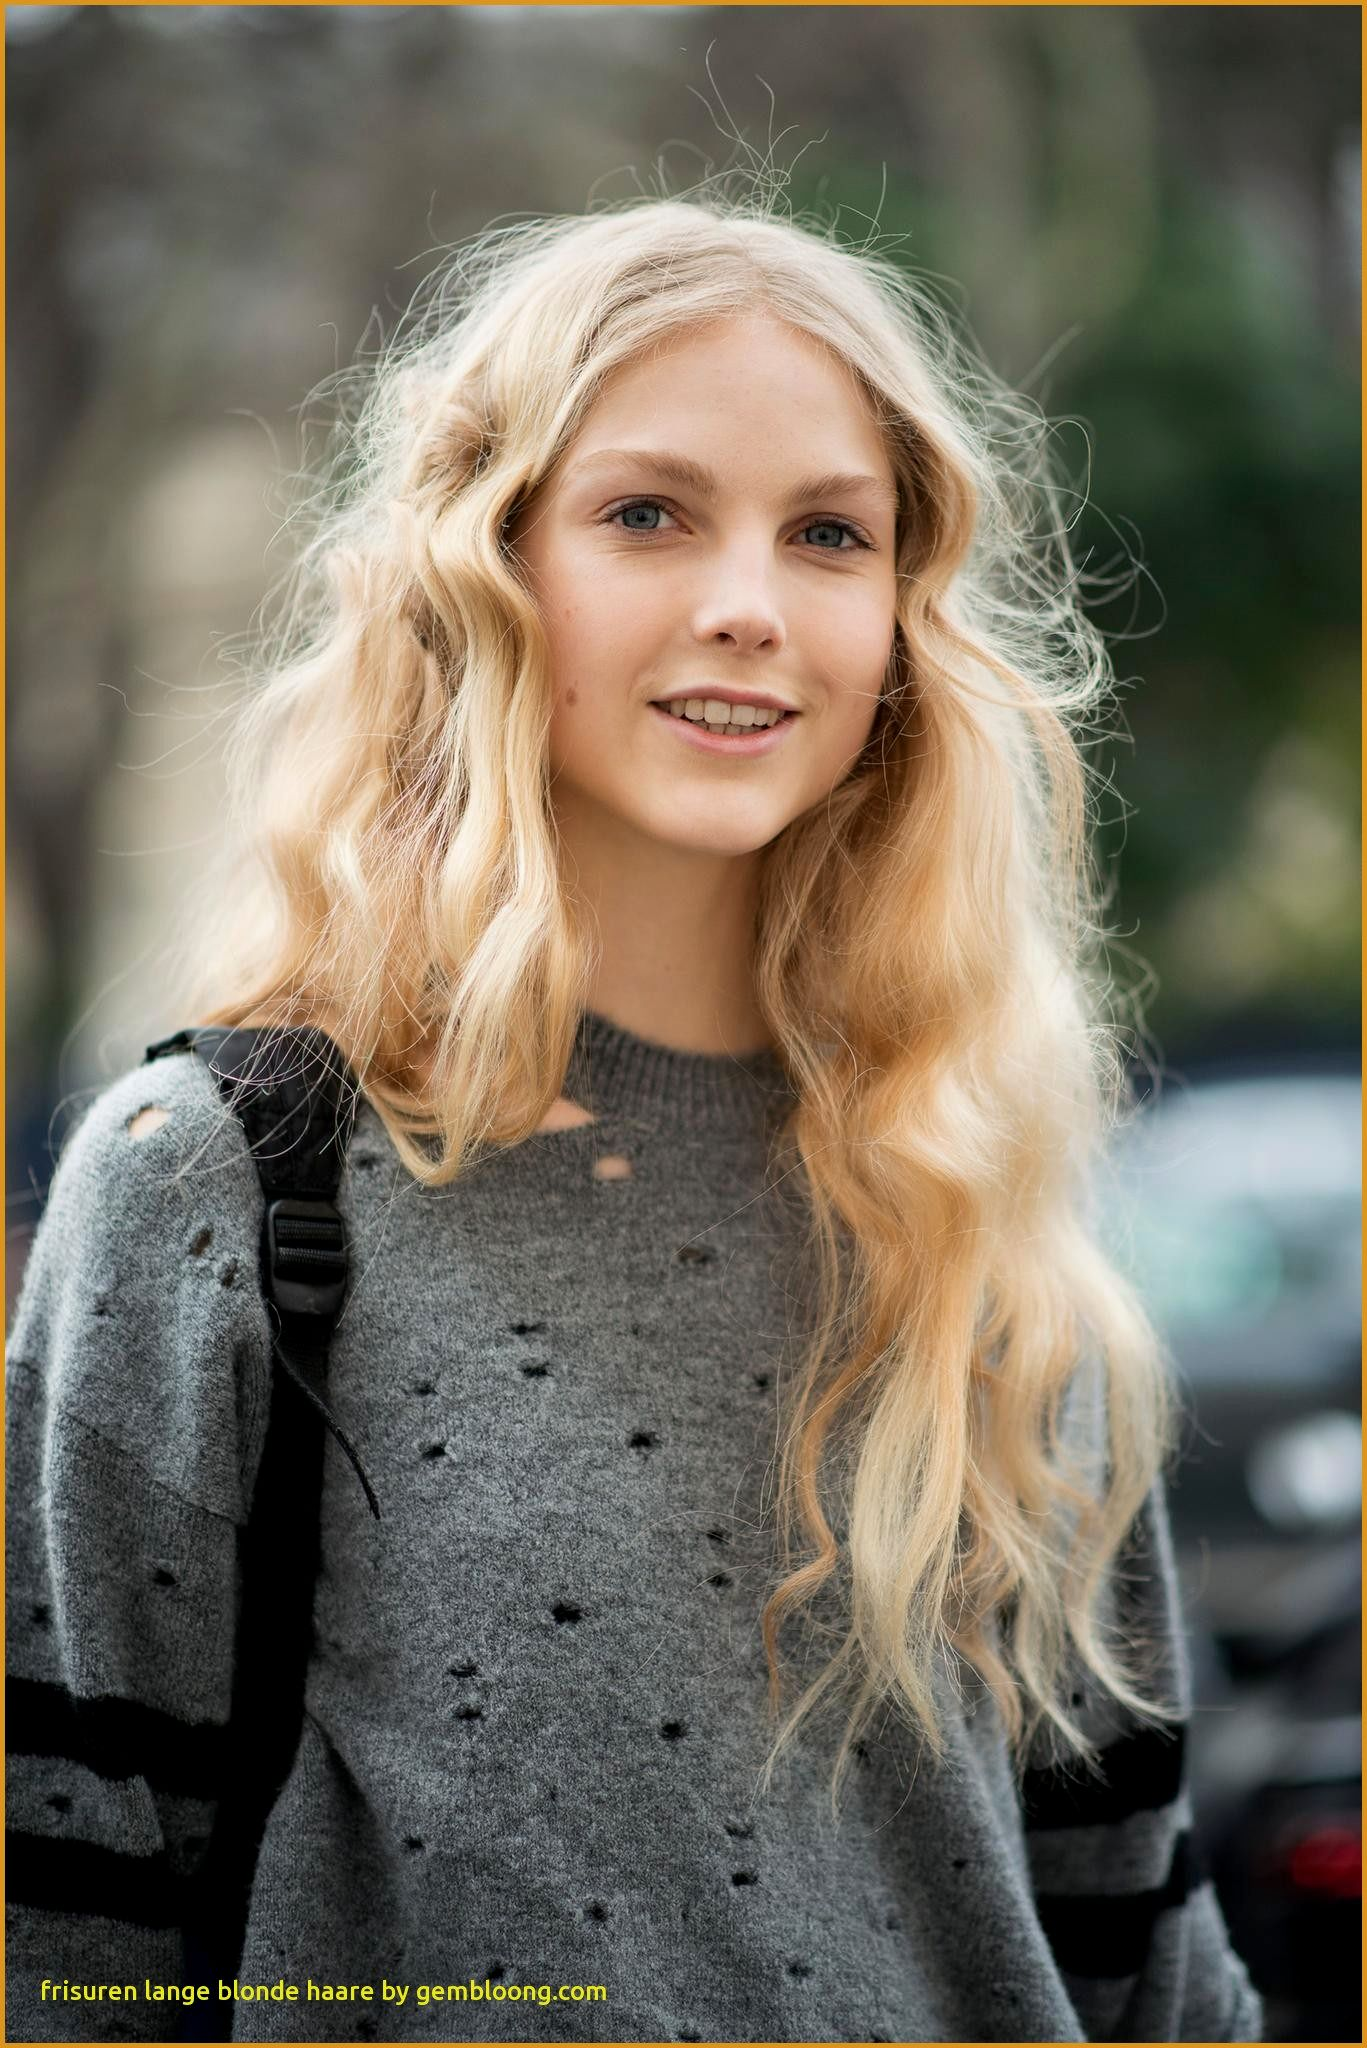 lovely hairstyles for thick hair Model Luxury Hairstyles For Thick Hair Concepts